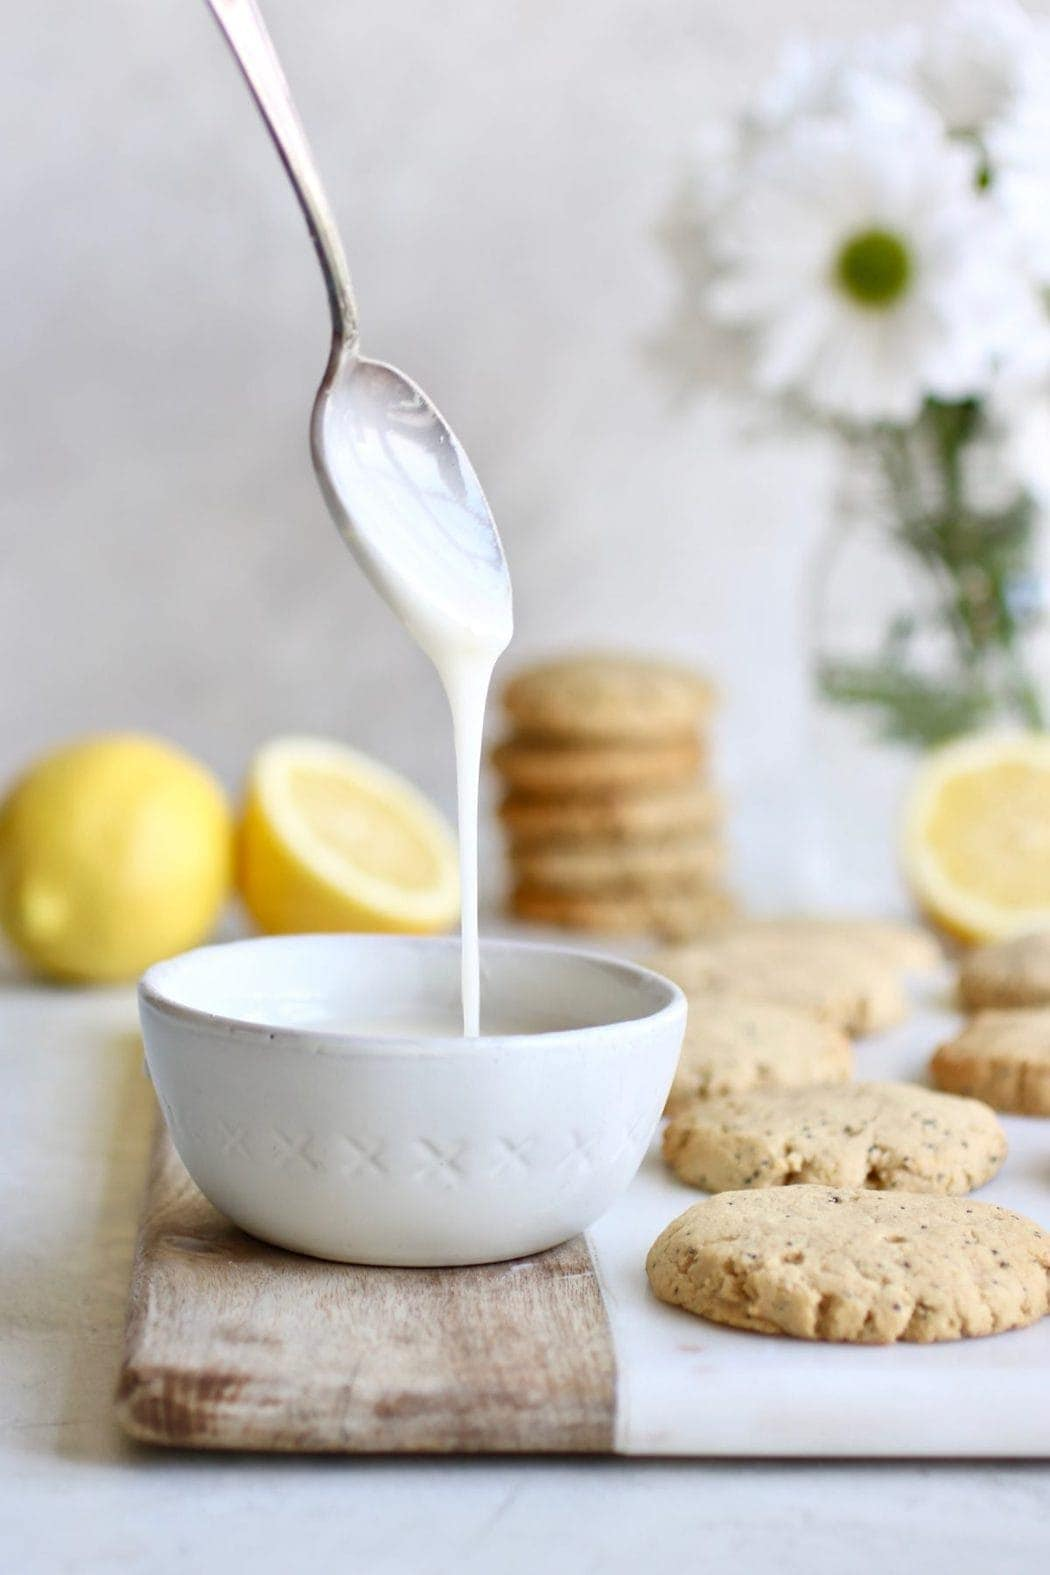 Photo of the lemon glaze that will be drizzled on the Paleo Lemon Poppy Seed Cookies.